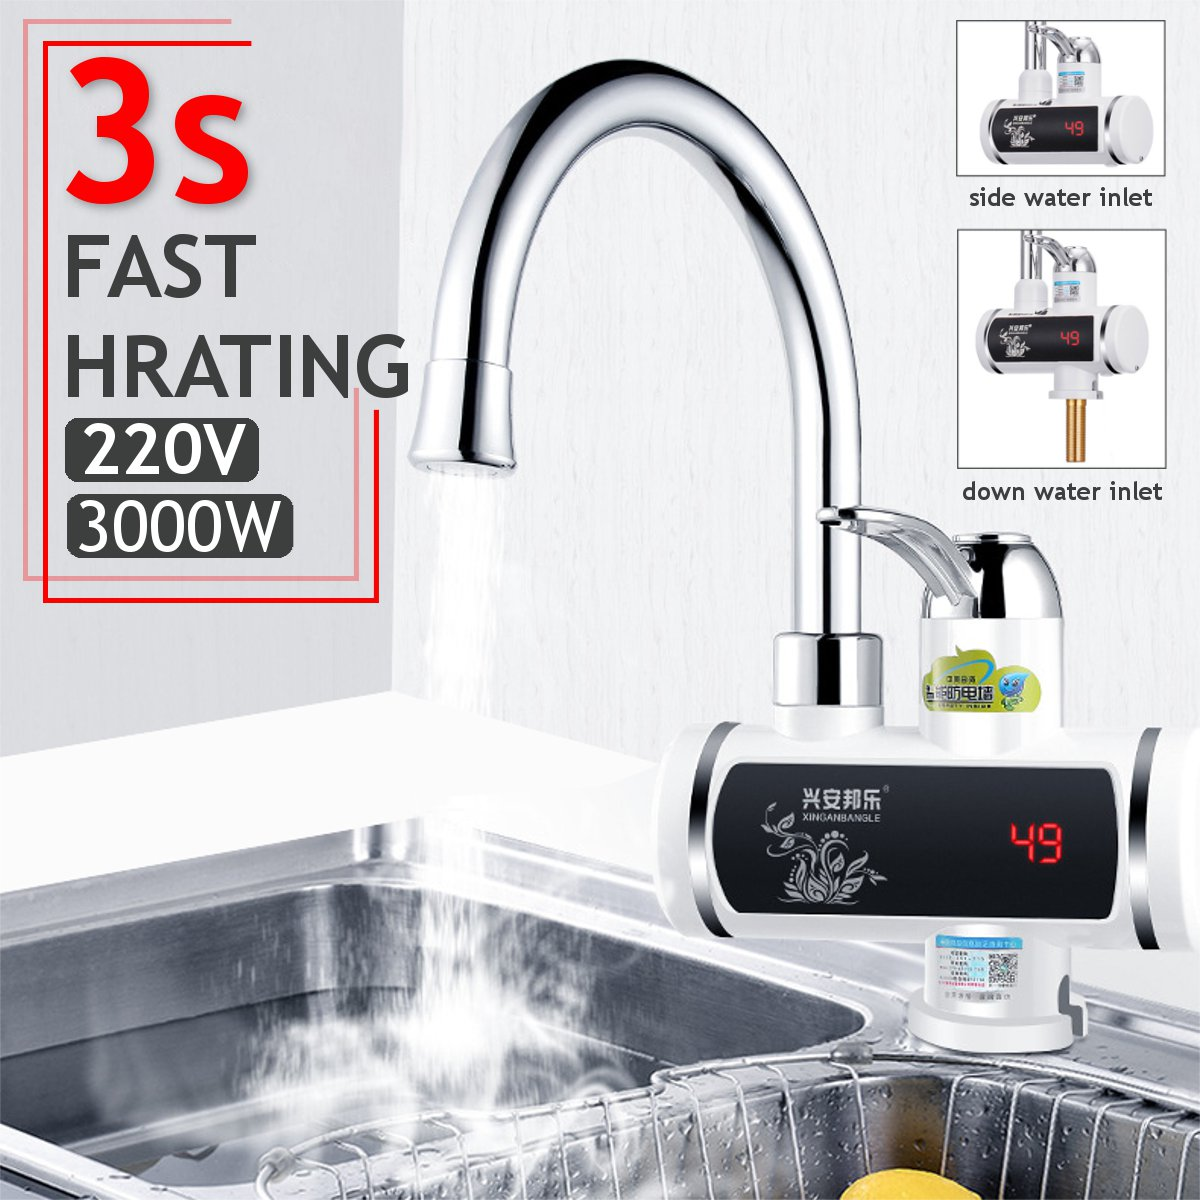 Electric Water Heaters 220V 3000W Instant Electric Faucet Home Kitchen Hot Cold Water Heater Tap Mixer Kitchen Bathroom Fixture